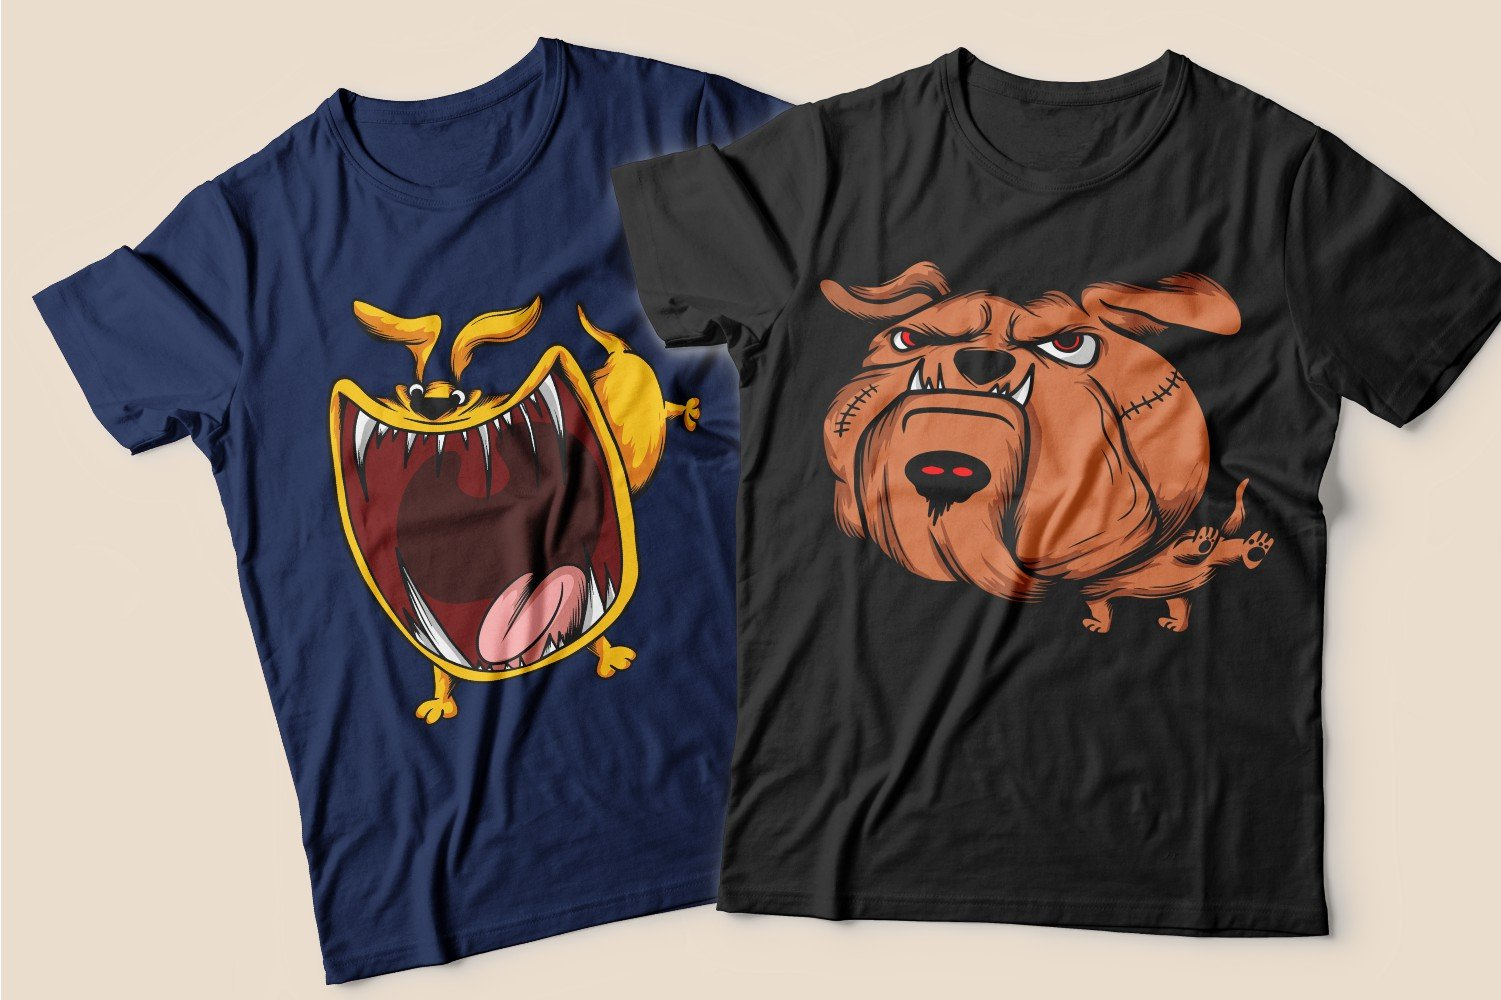 Two T-shirts: blue with a ginger dog with a big throat and black with an angry ginger dog.